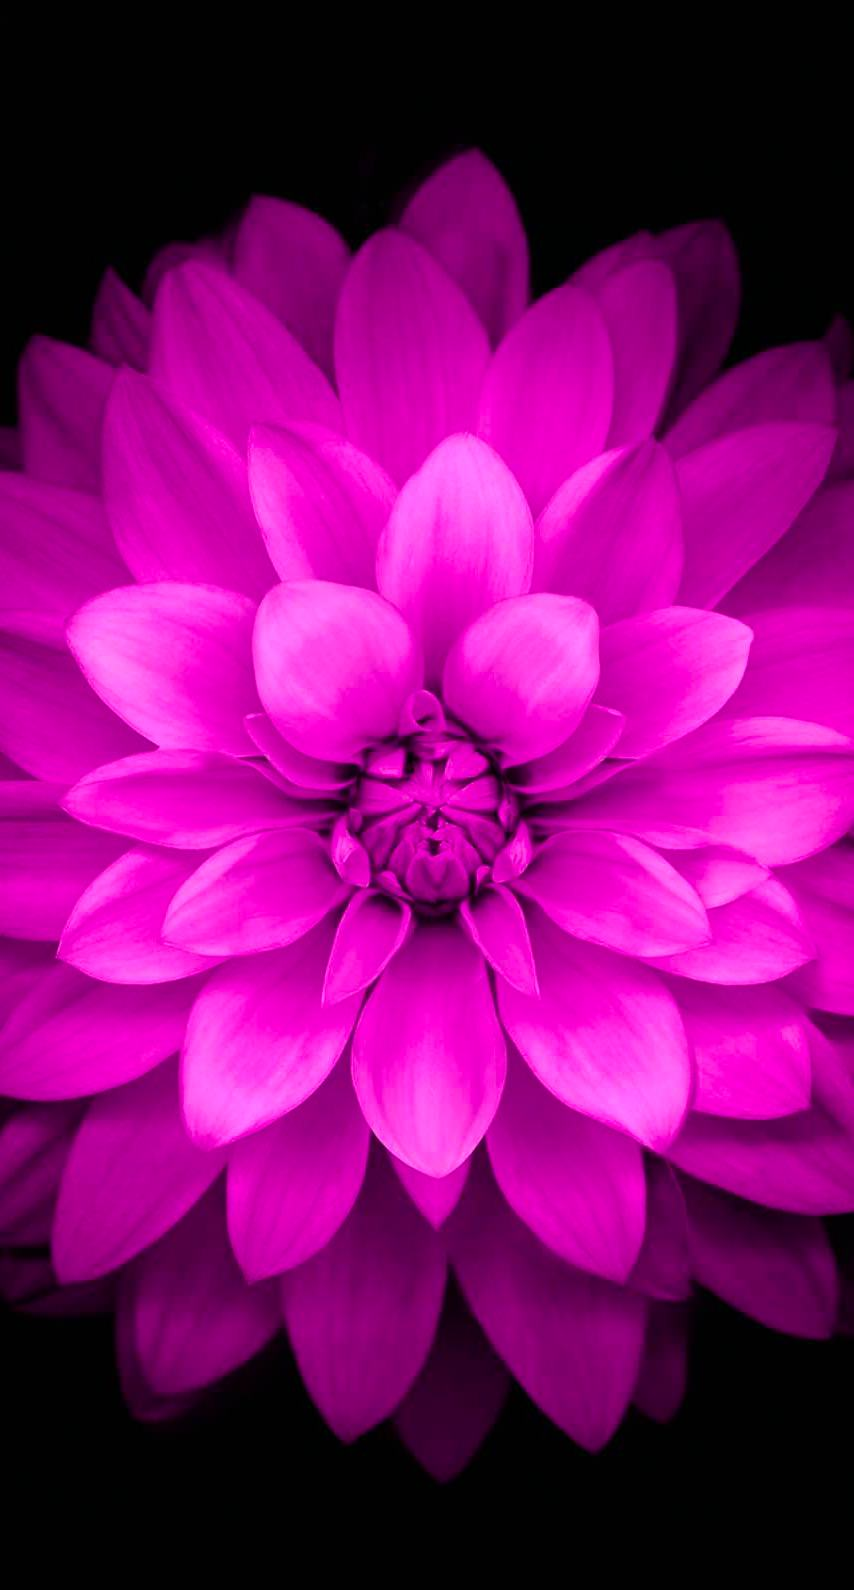 Flowers Purple Black Wallpapersc Iphone7